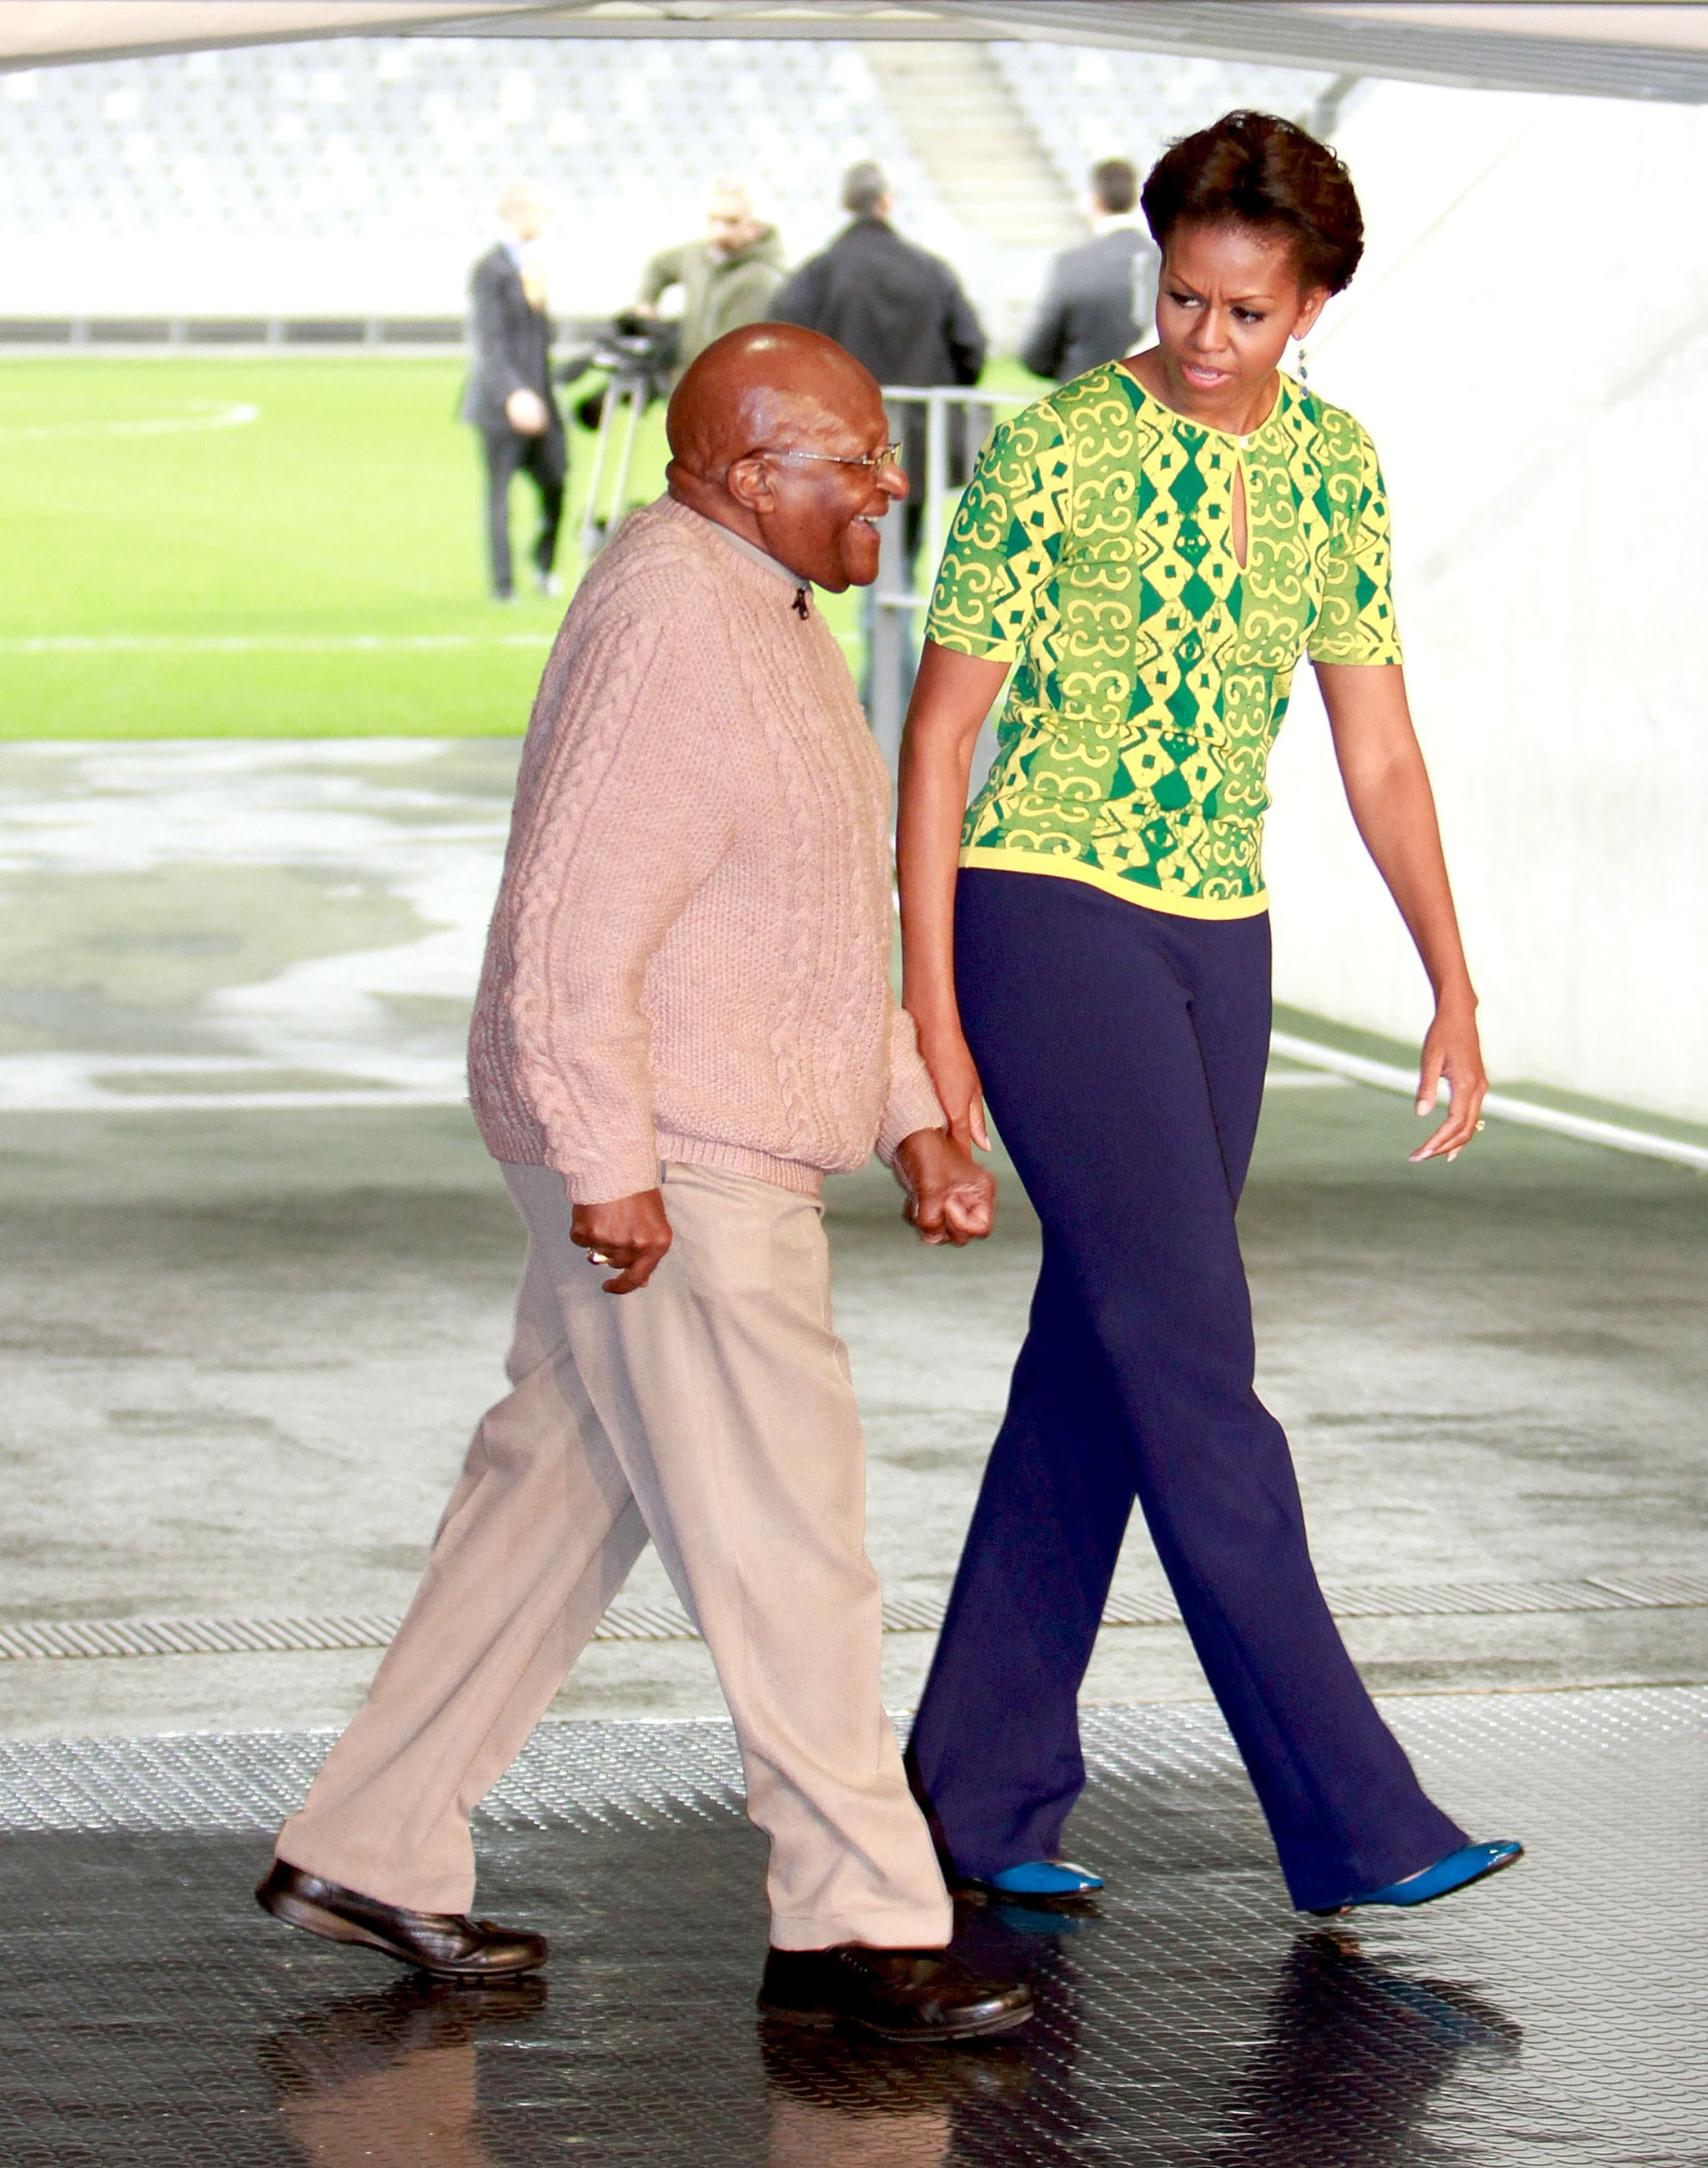 We're loving this printed neon blue-and-yellow Duro Olowu top and navy pant combo Michelle wore during her trip to South Africa.